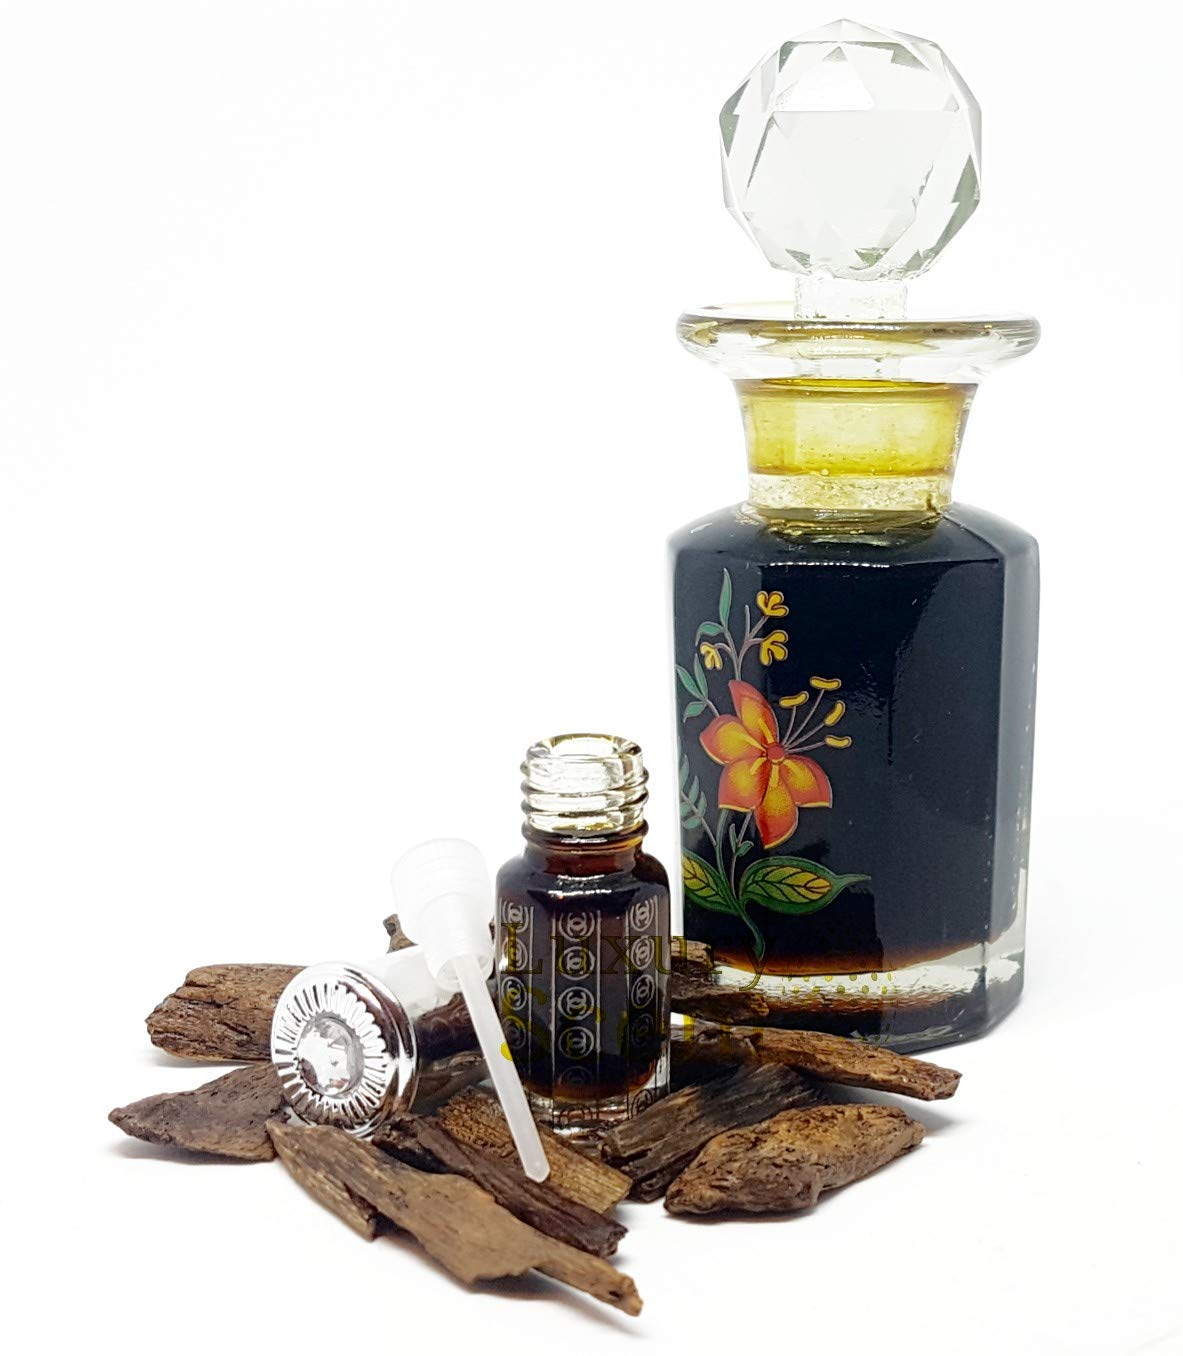 100% PURE CAMBODIAN OUD PERFUME OIL BY LUXURY SCENT 3ML CAMBODIAN AGARWOOD OIL PREMIUM QUALITY OUDH ATTAR